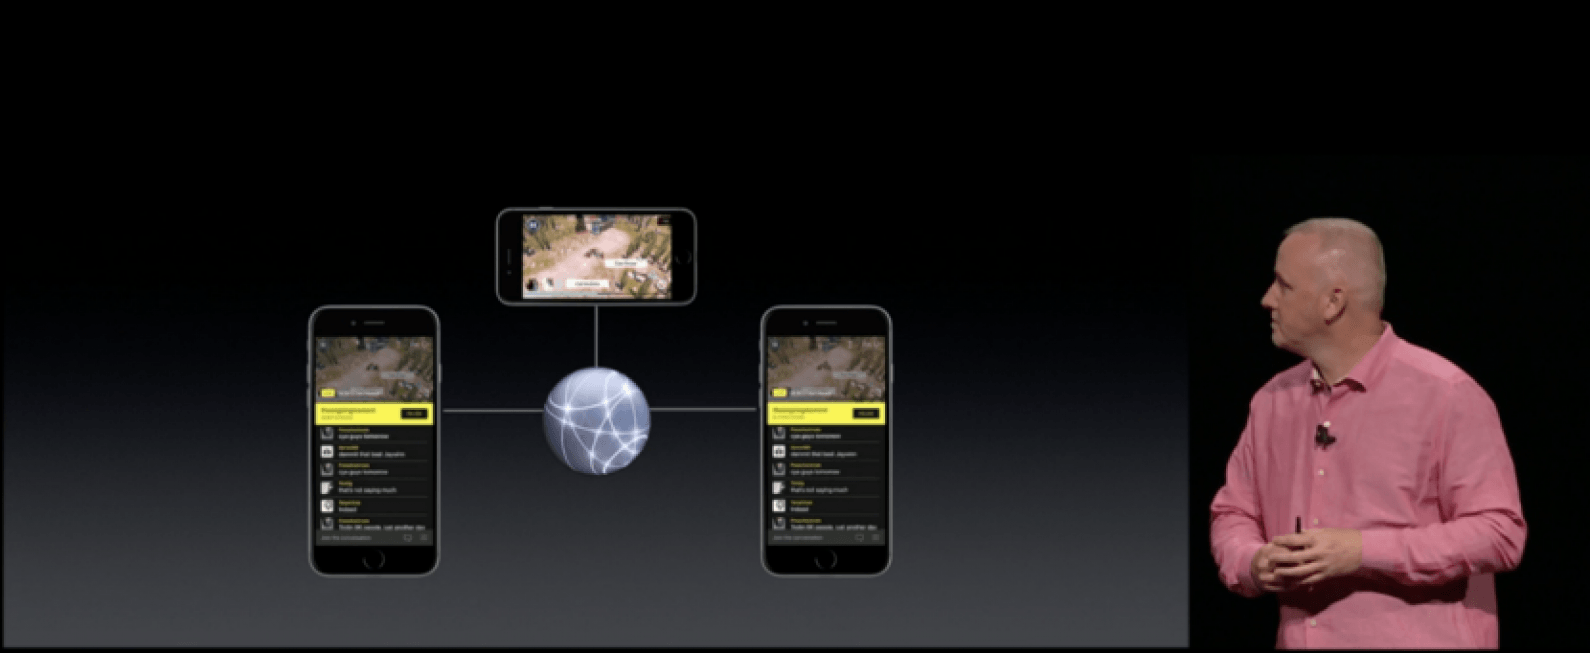 Game Centered Special WWDC Update: ReplayKit Live Brings the Promise of Live-Streaming Your Favorite iOS Games.